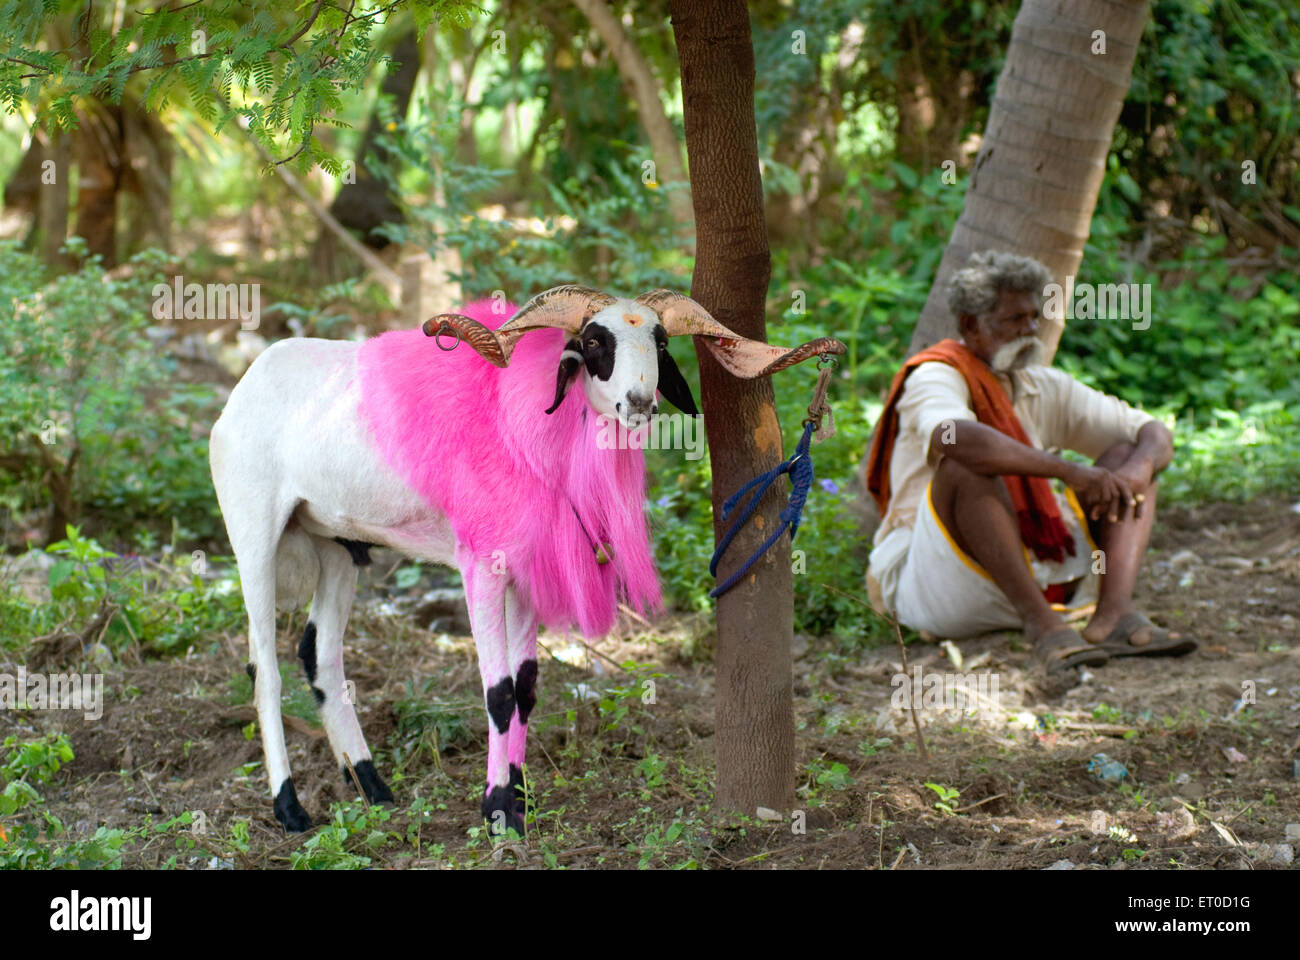 Fighting Old Age Stockfotos & Fighting Old Age Bilder - Alamy